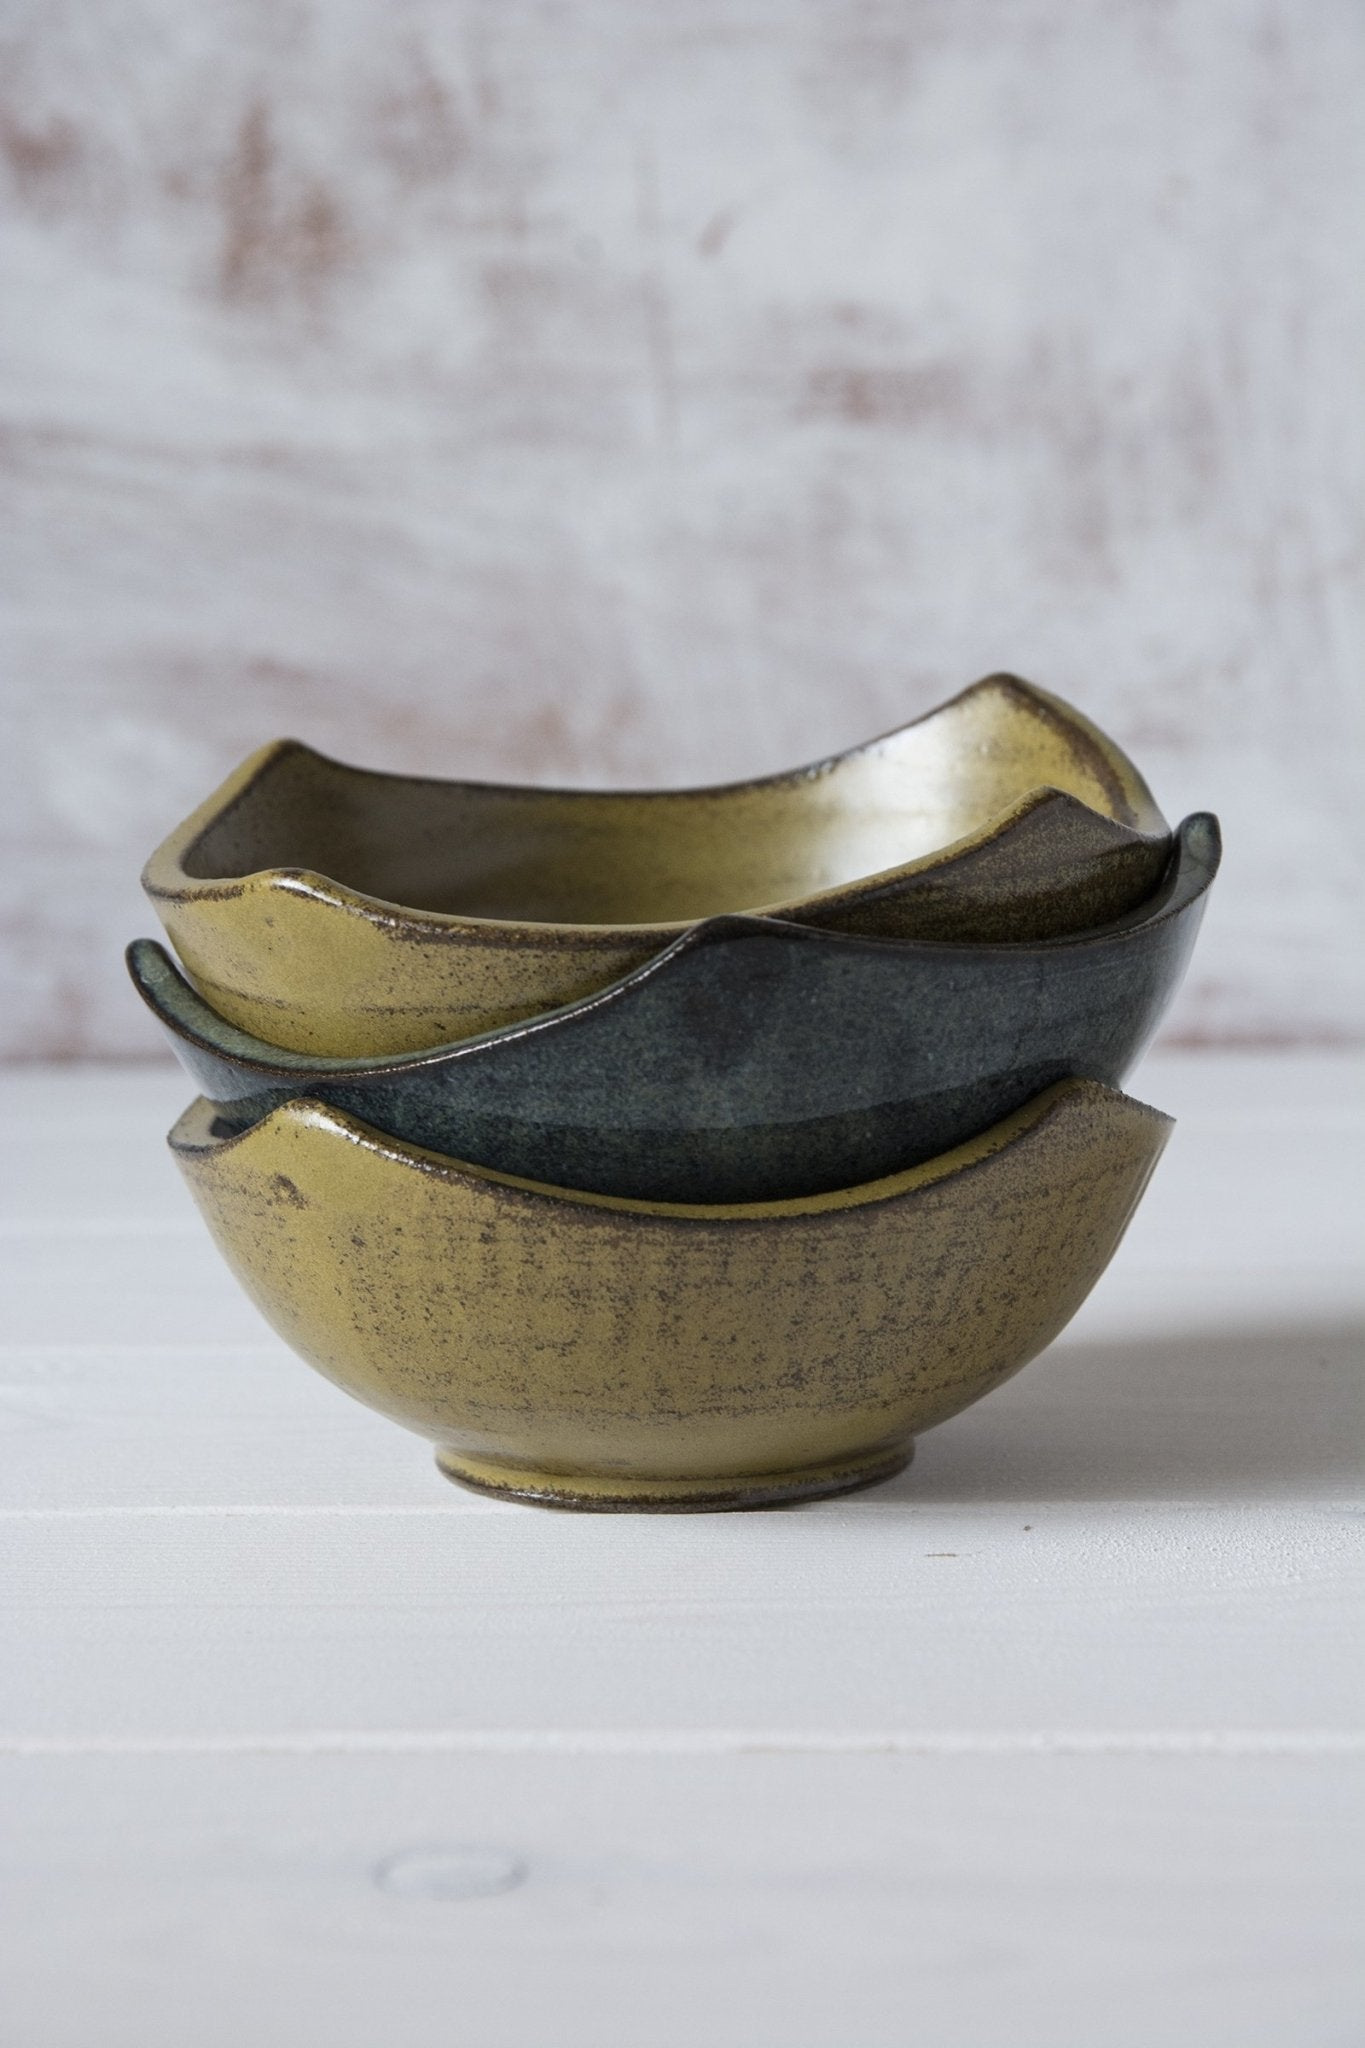 Set of 3 Shaped Versatile Mini Bowls - Mad About Pottery- Bowl